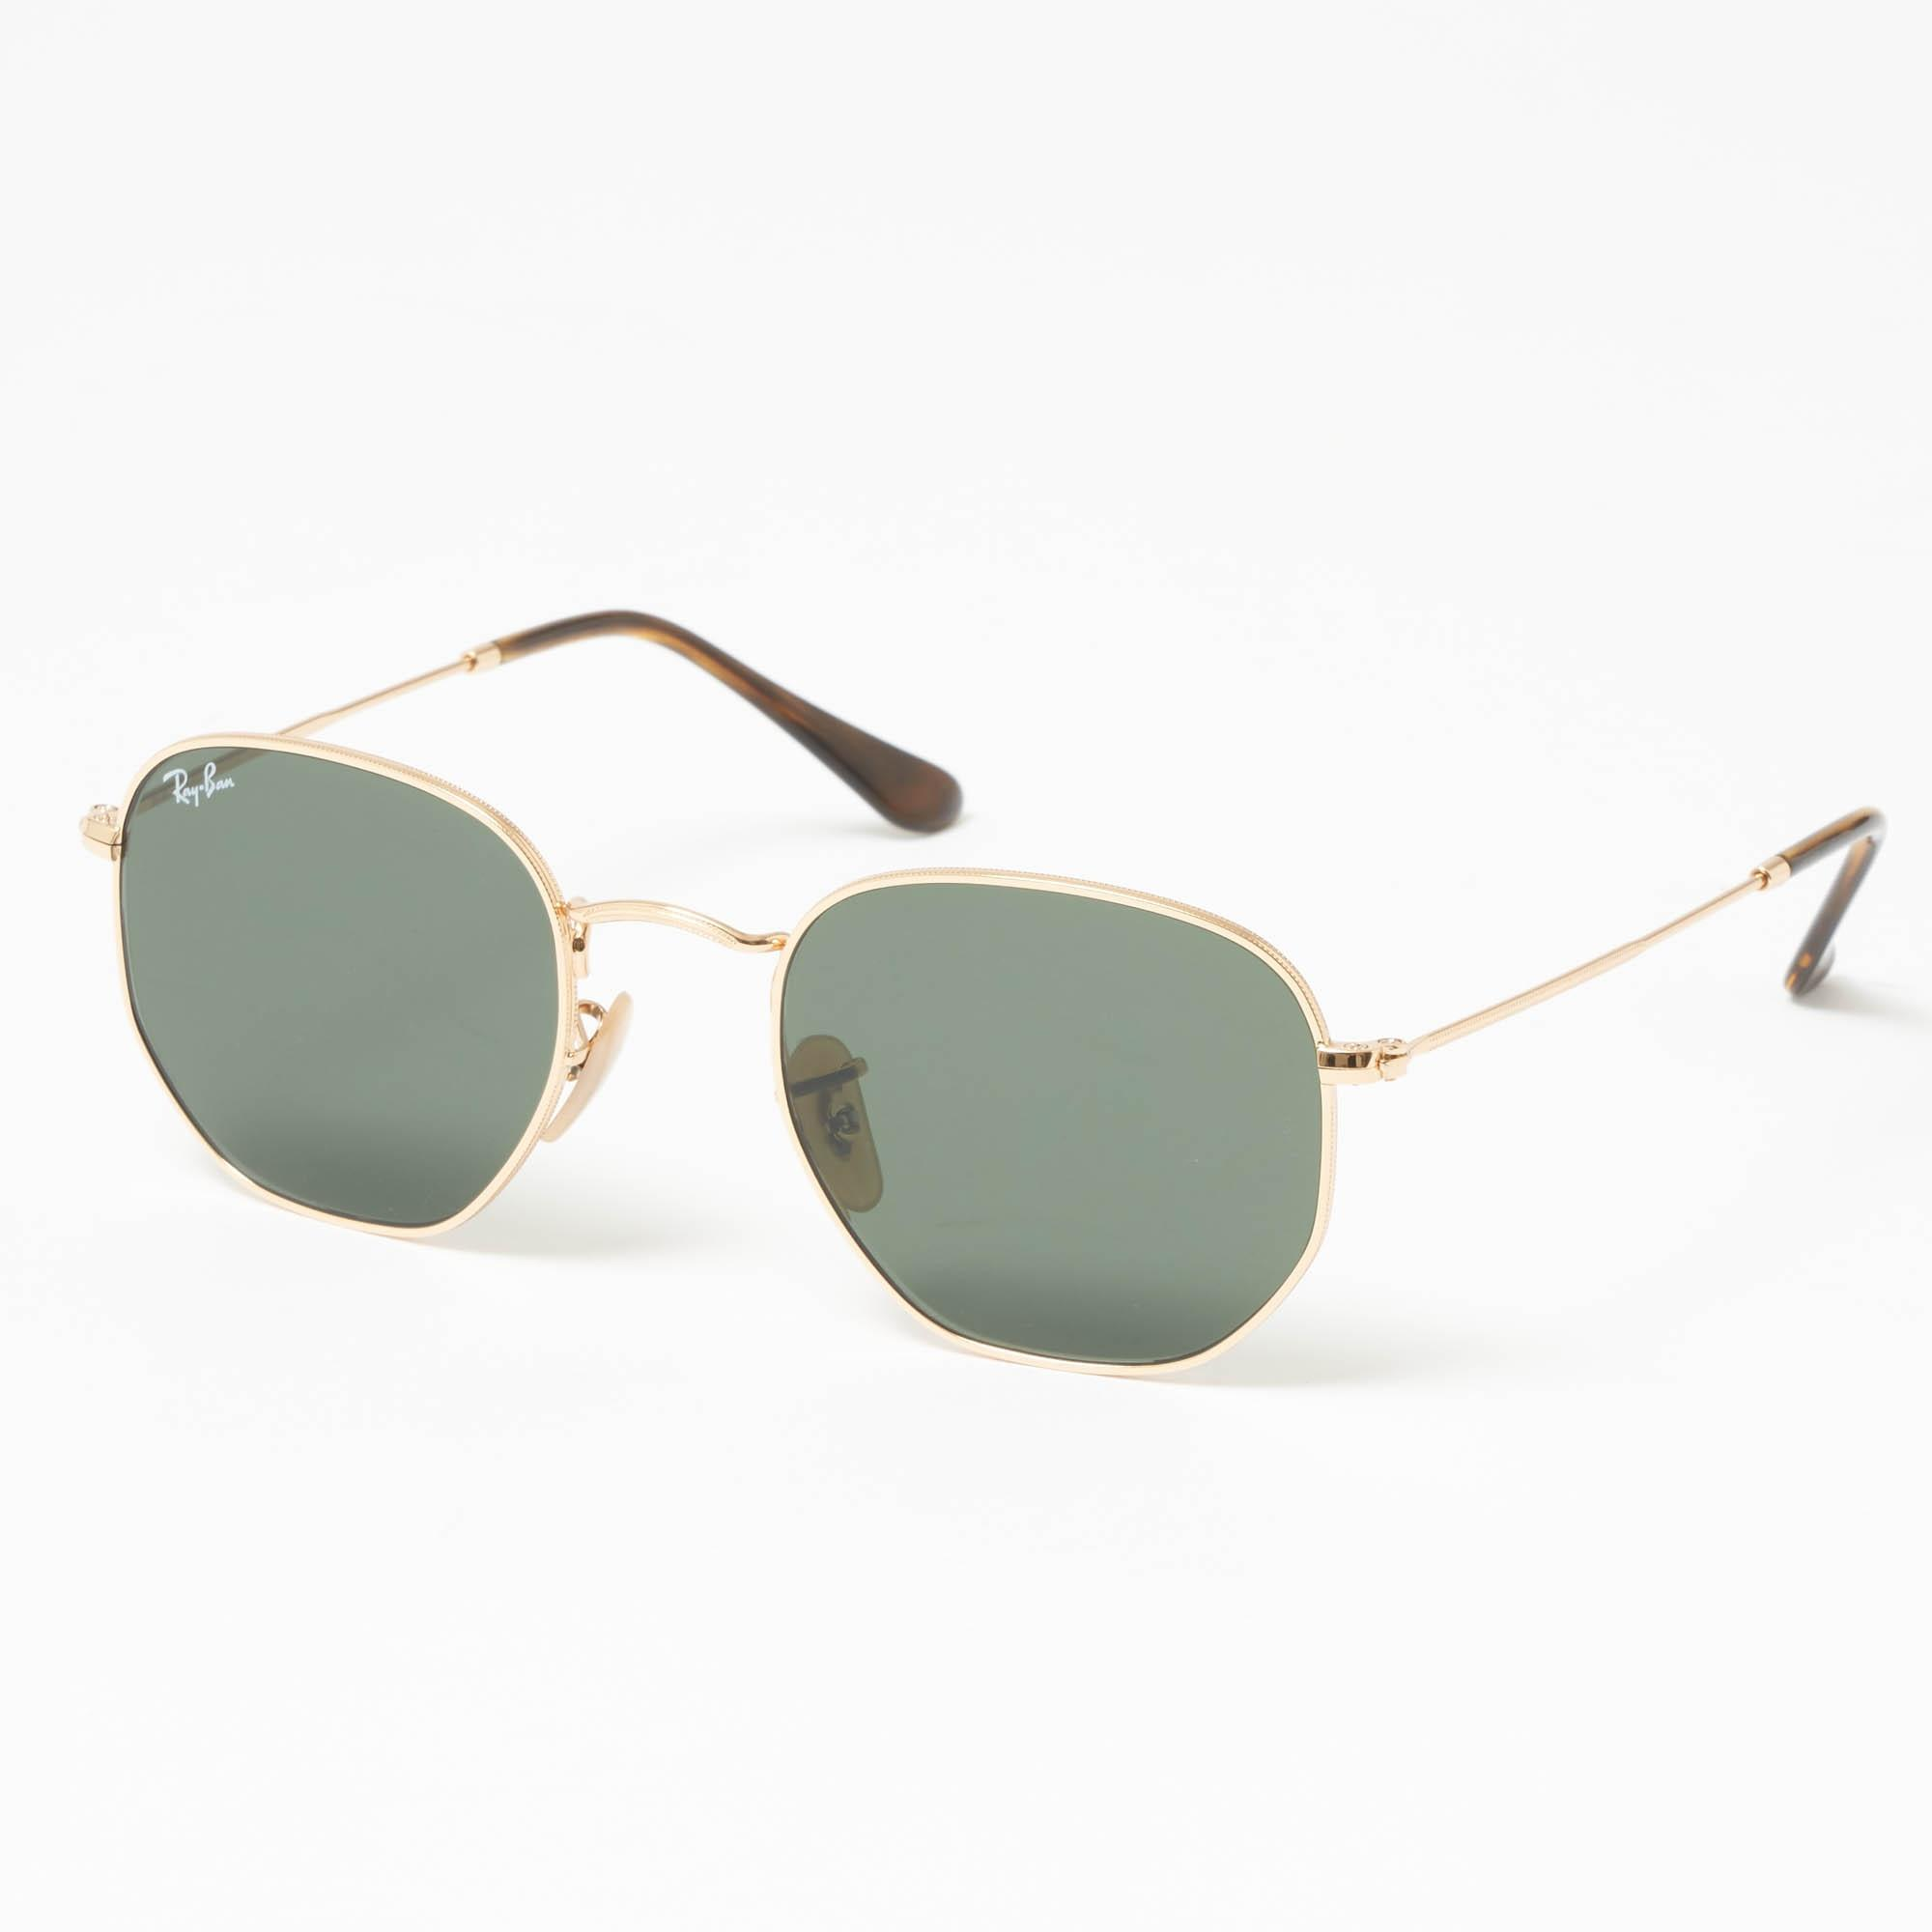 9b4333ef9c Ray-Ban Gold Hexagonal Flat Lens Sunglasses - Green Classic G-15 ...